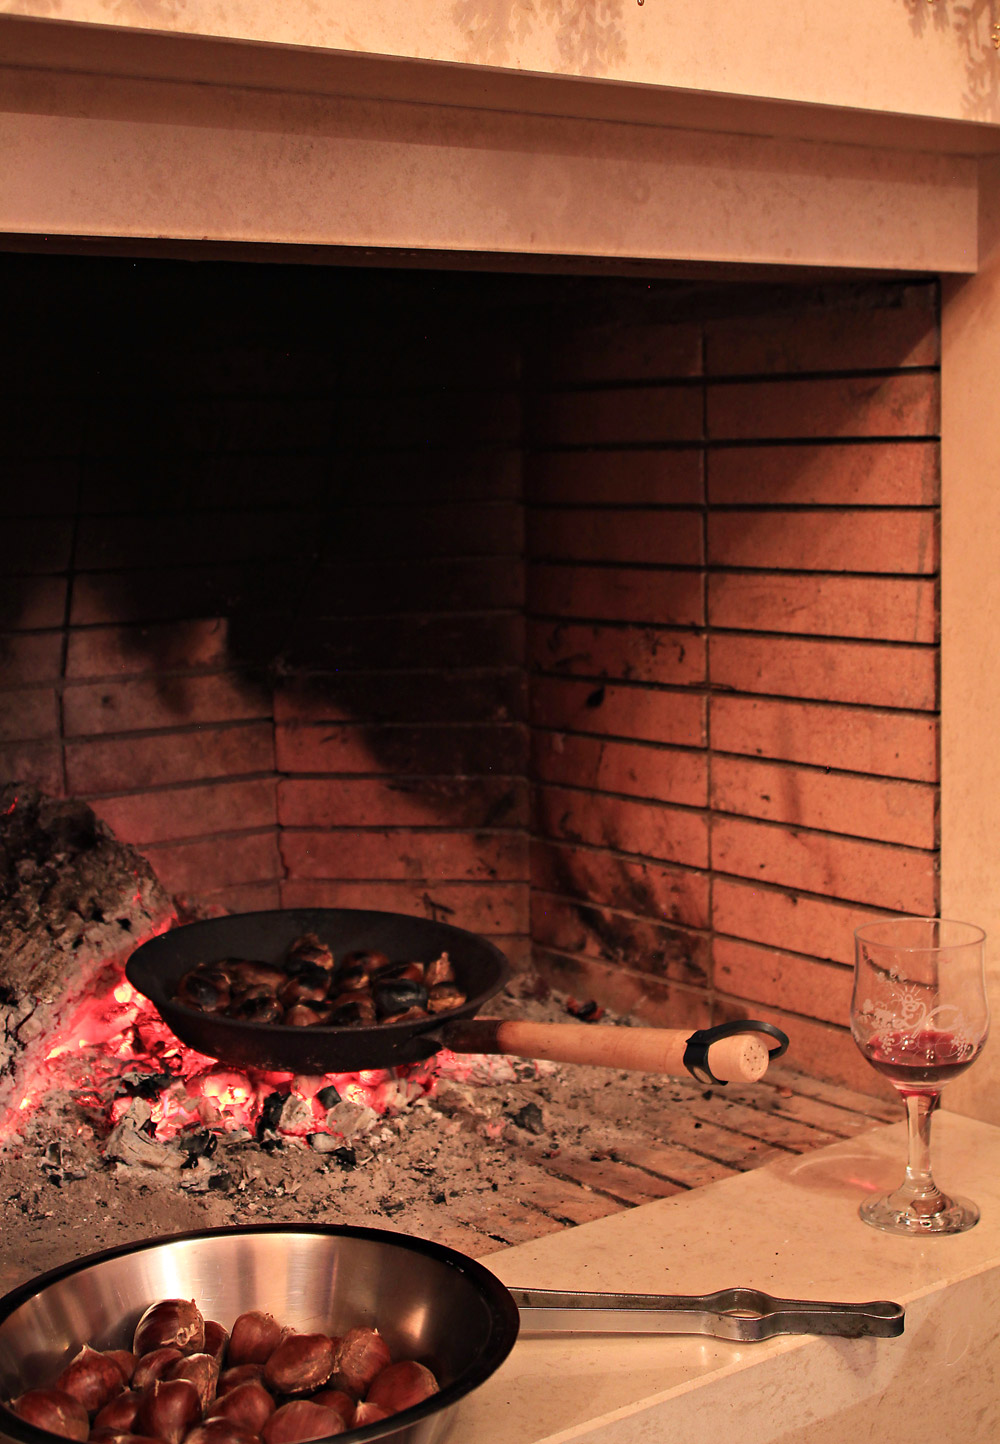 The best way to roast (& boil) chestnuts in the fireplace | from IN WHIRL OF INSPIRATION